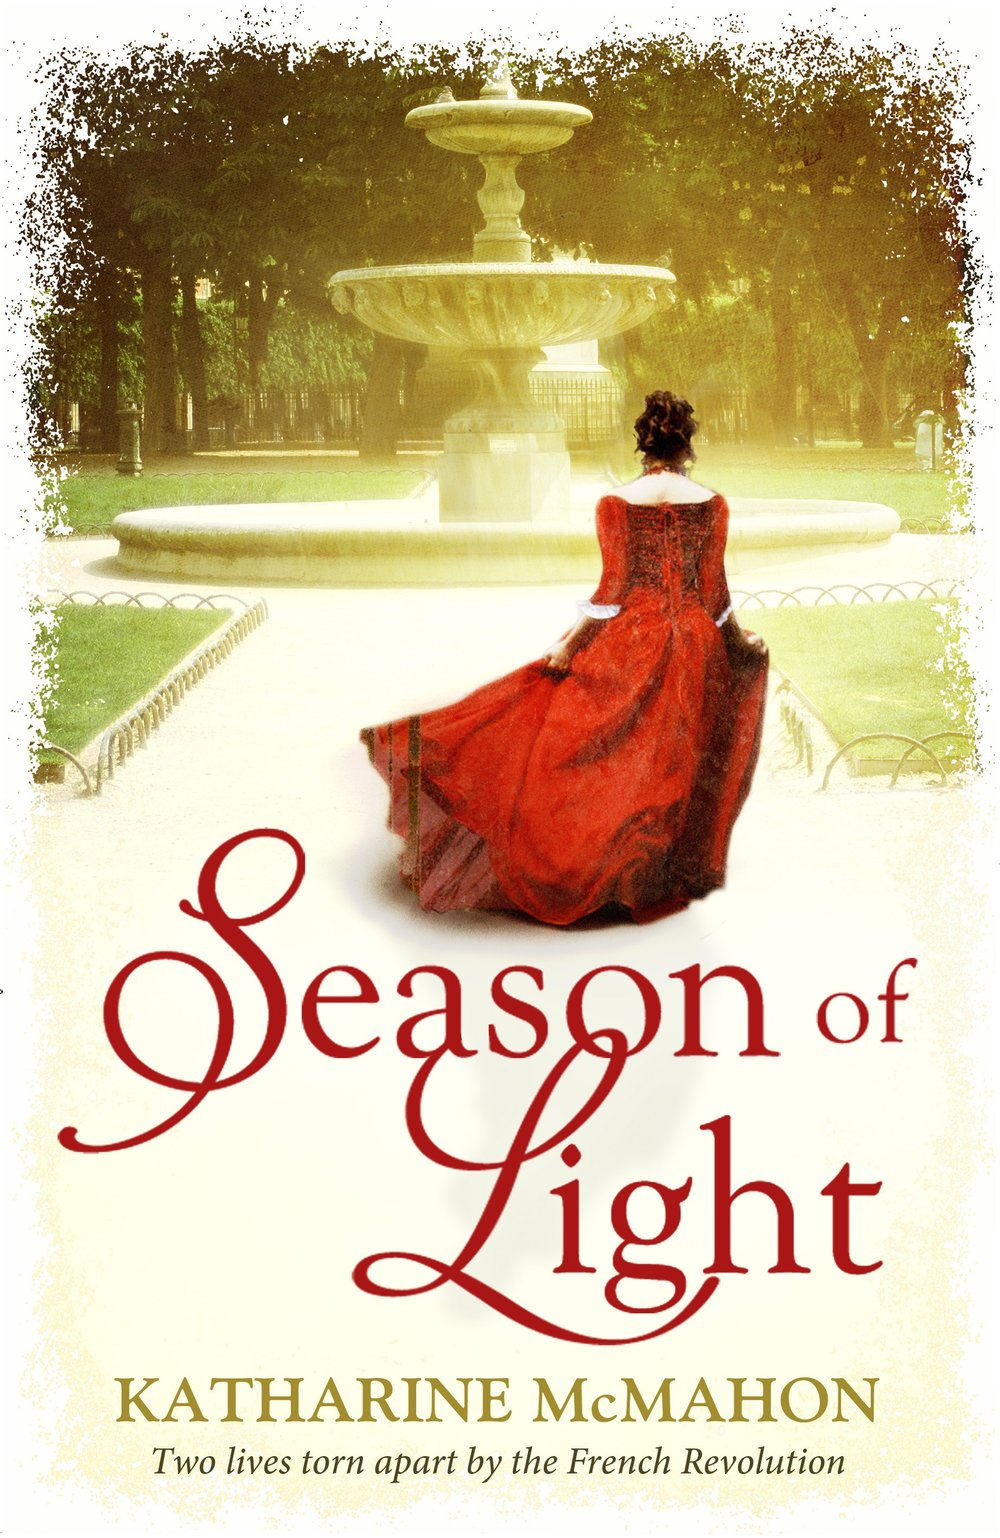 season-of-light-cover.jpg